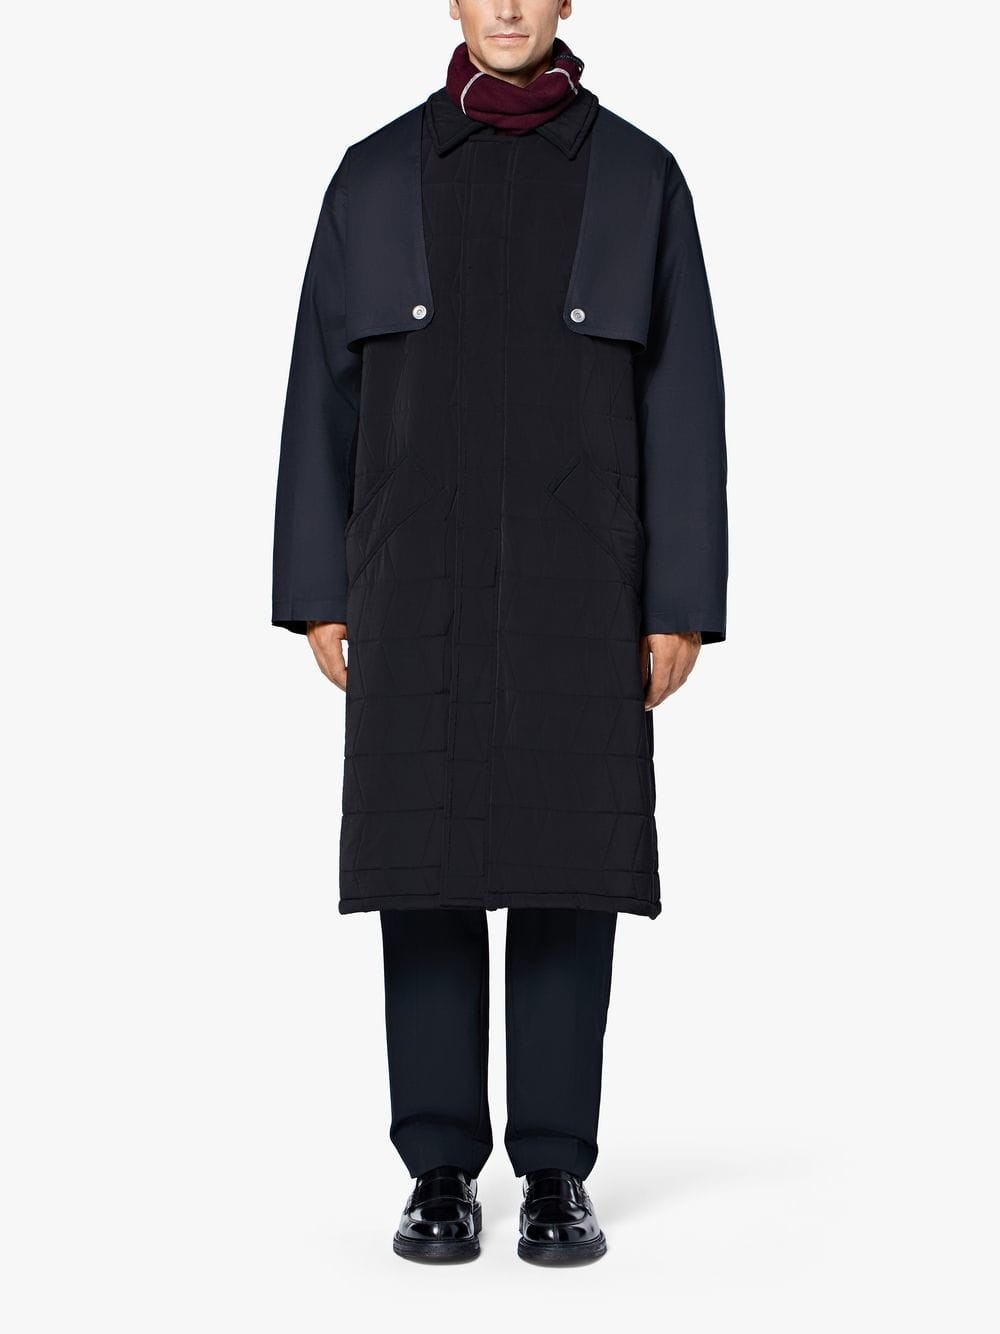 On Sale: Black Padded 0003 Trench Coat